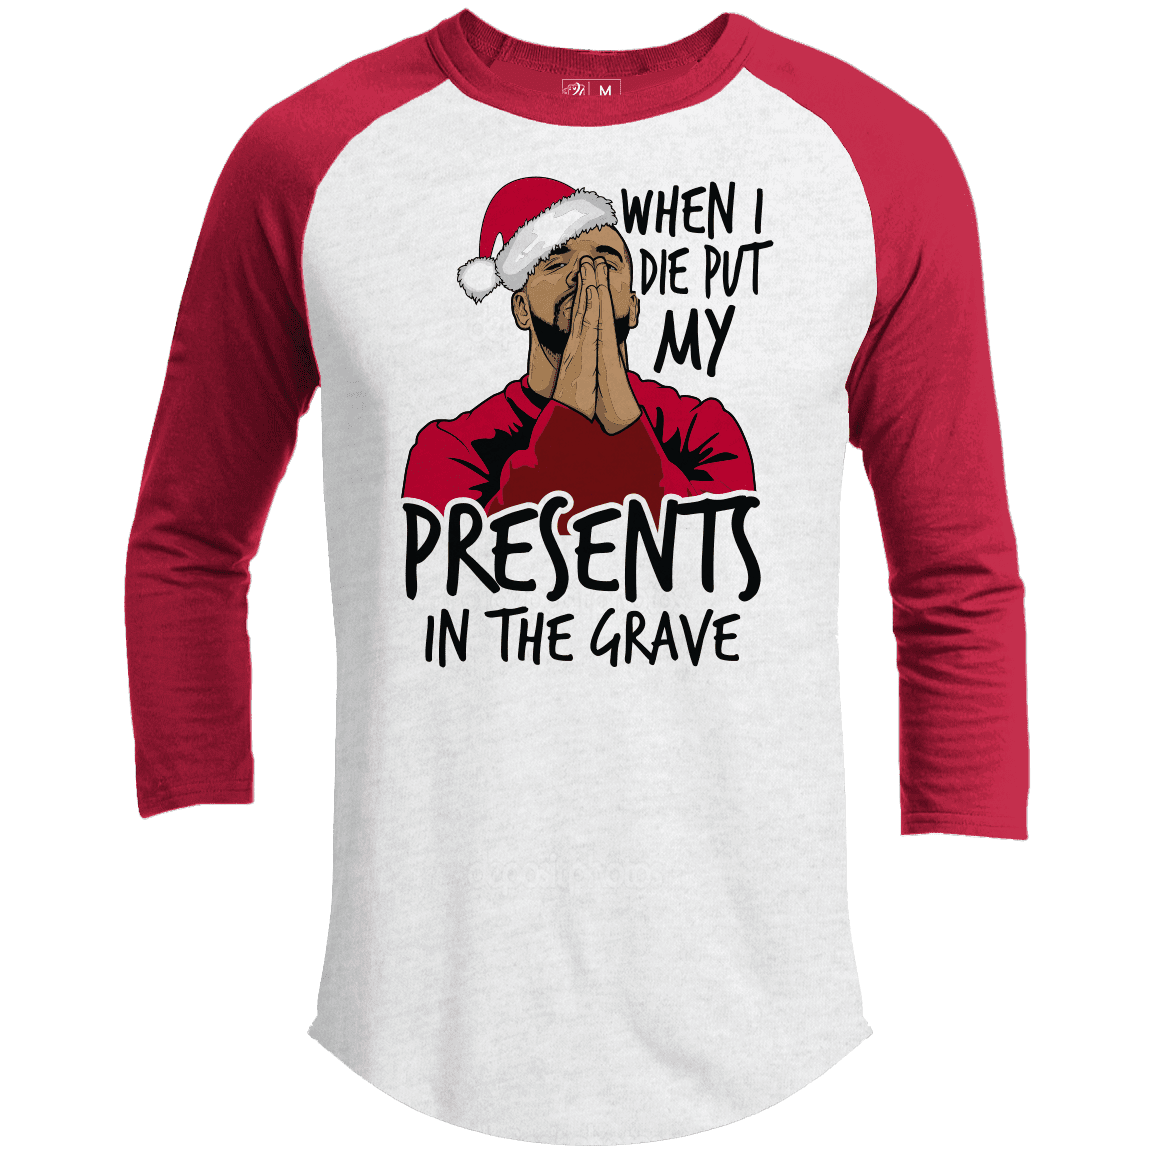 PUT MY PRESENTS IN THE GRAVE Premium Christmas Raglan